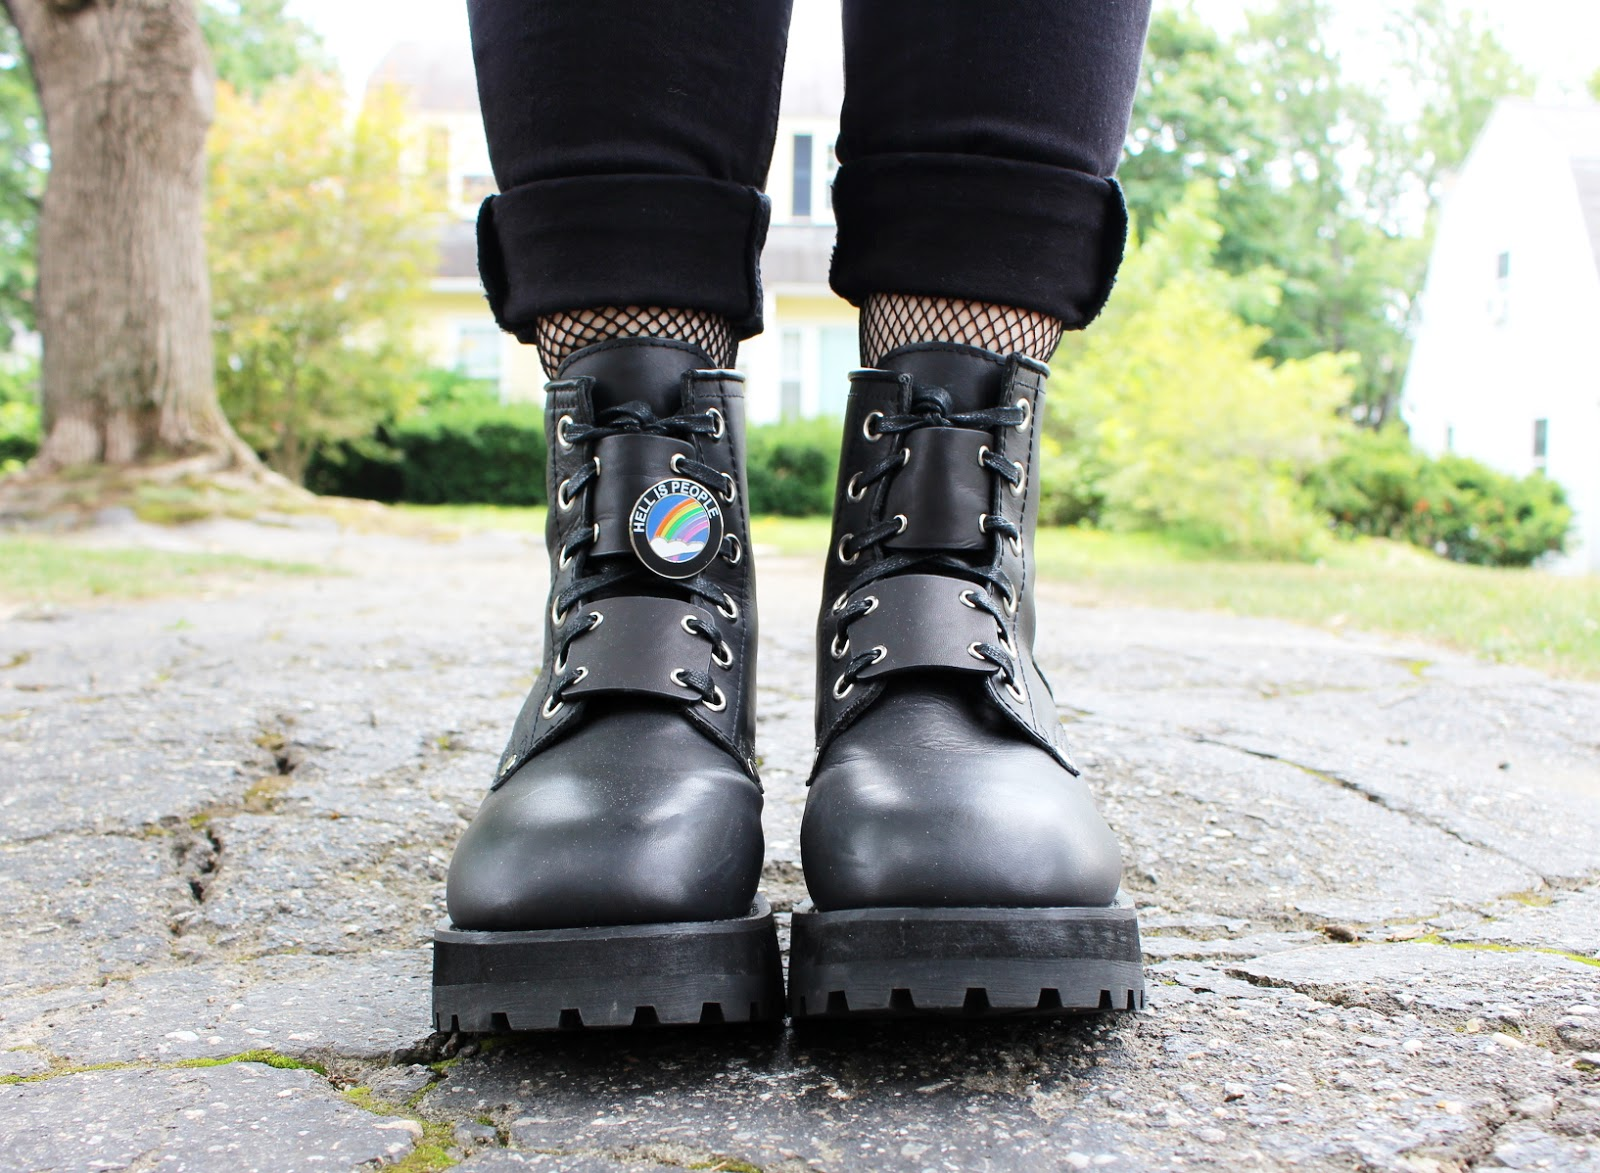 unif dedi boots, hell is people pin